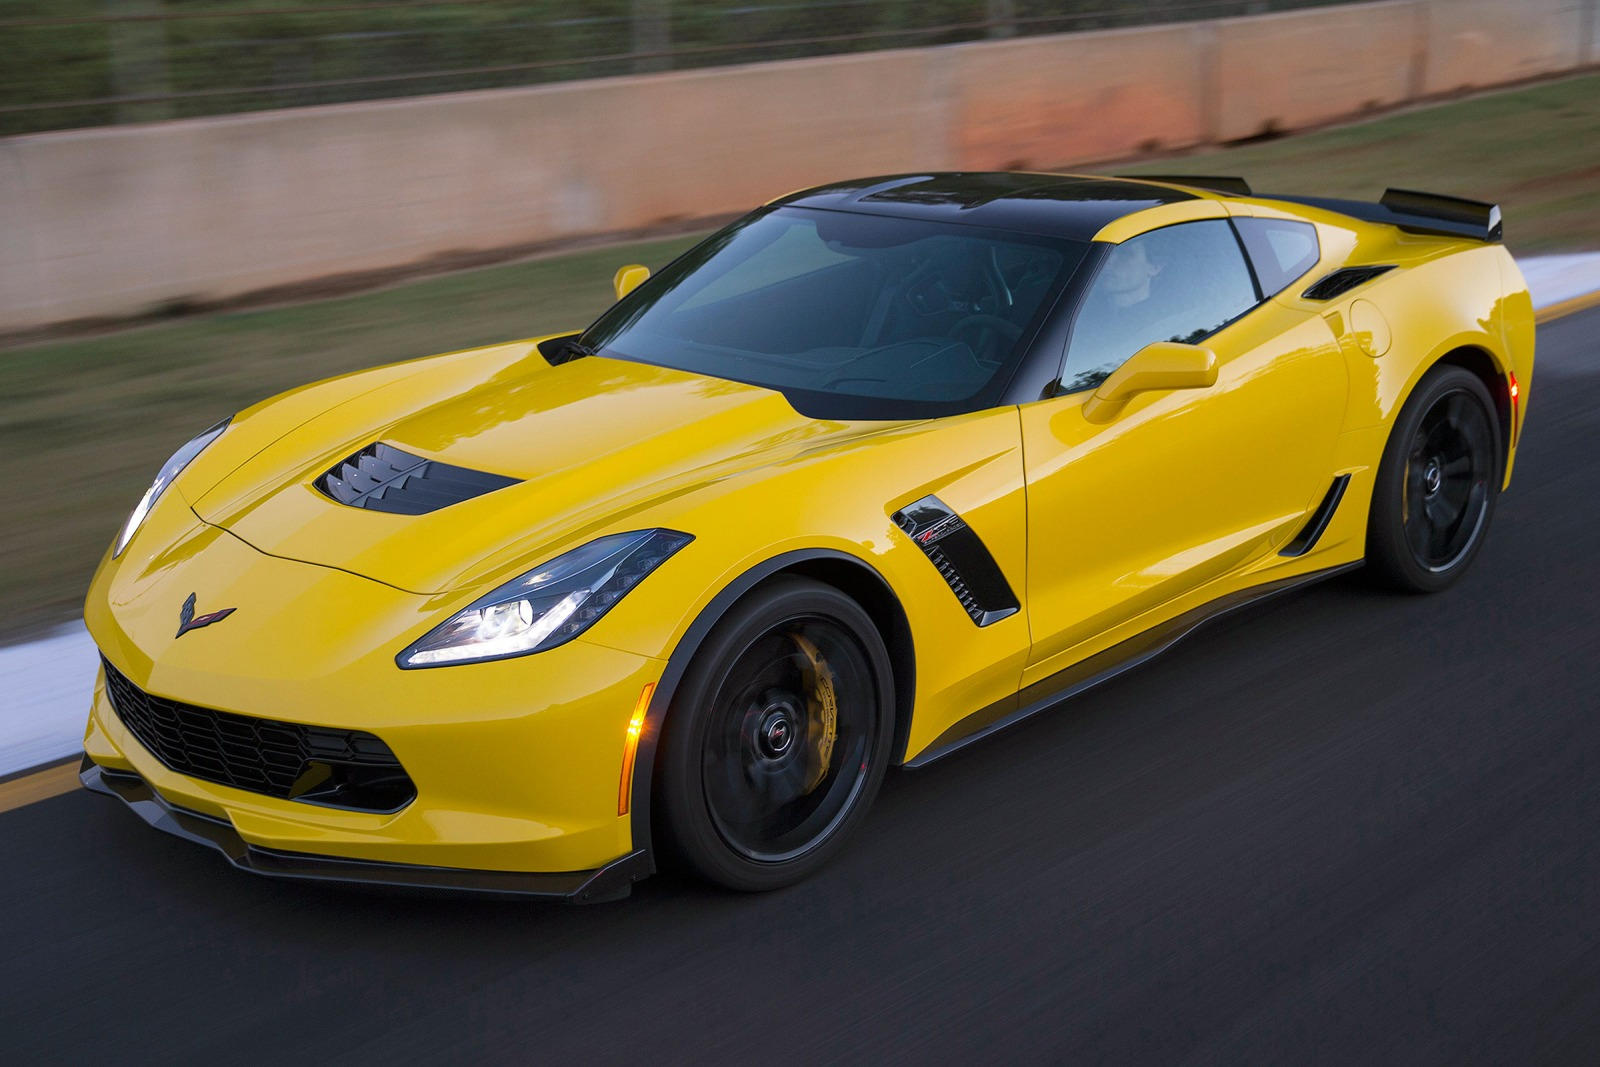 2019 Chevrolet Corvette Z06 Coupe Review, Trims, Specs and ...